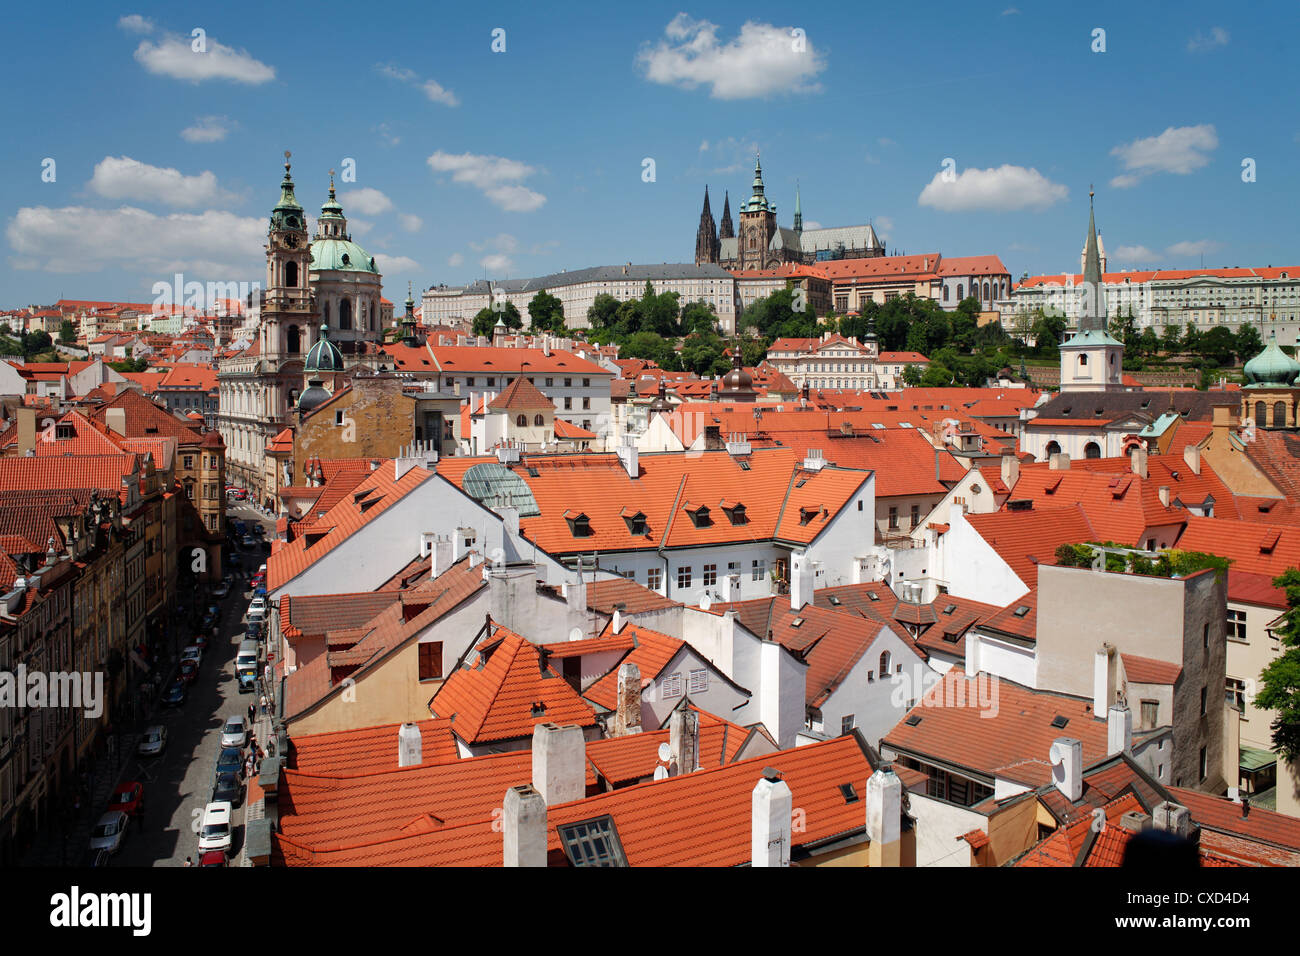 La cathédrale Saint-Guy et Eglise Saint-Nicolas, Prague, République Tchèque, Europe Photo Stock